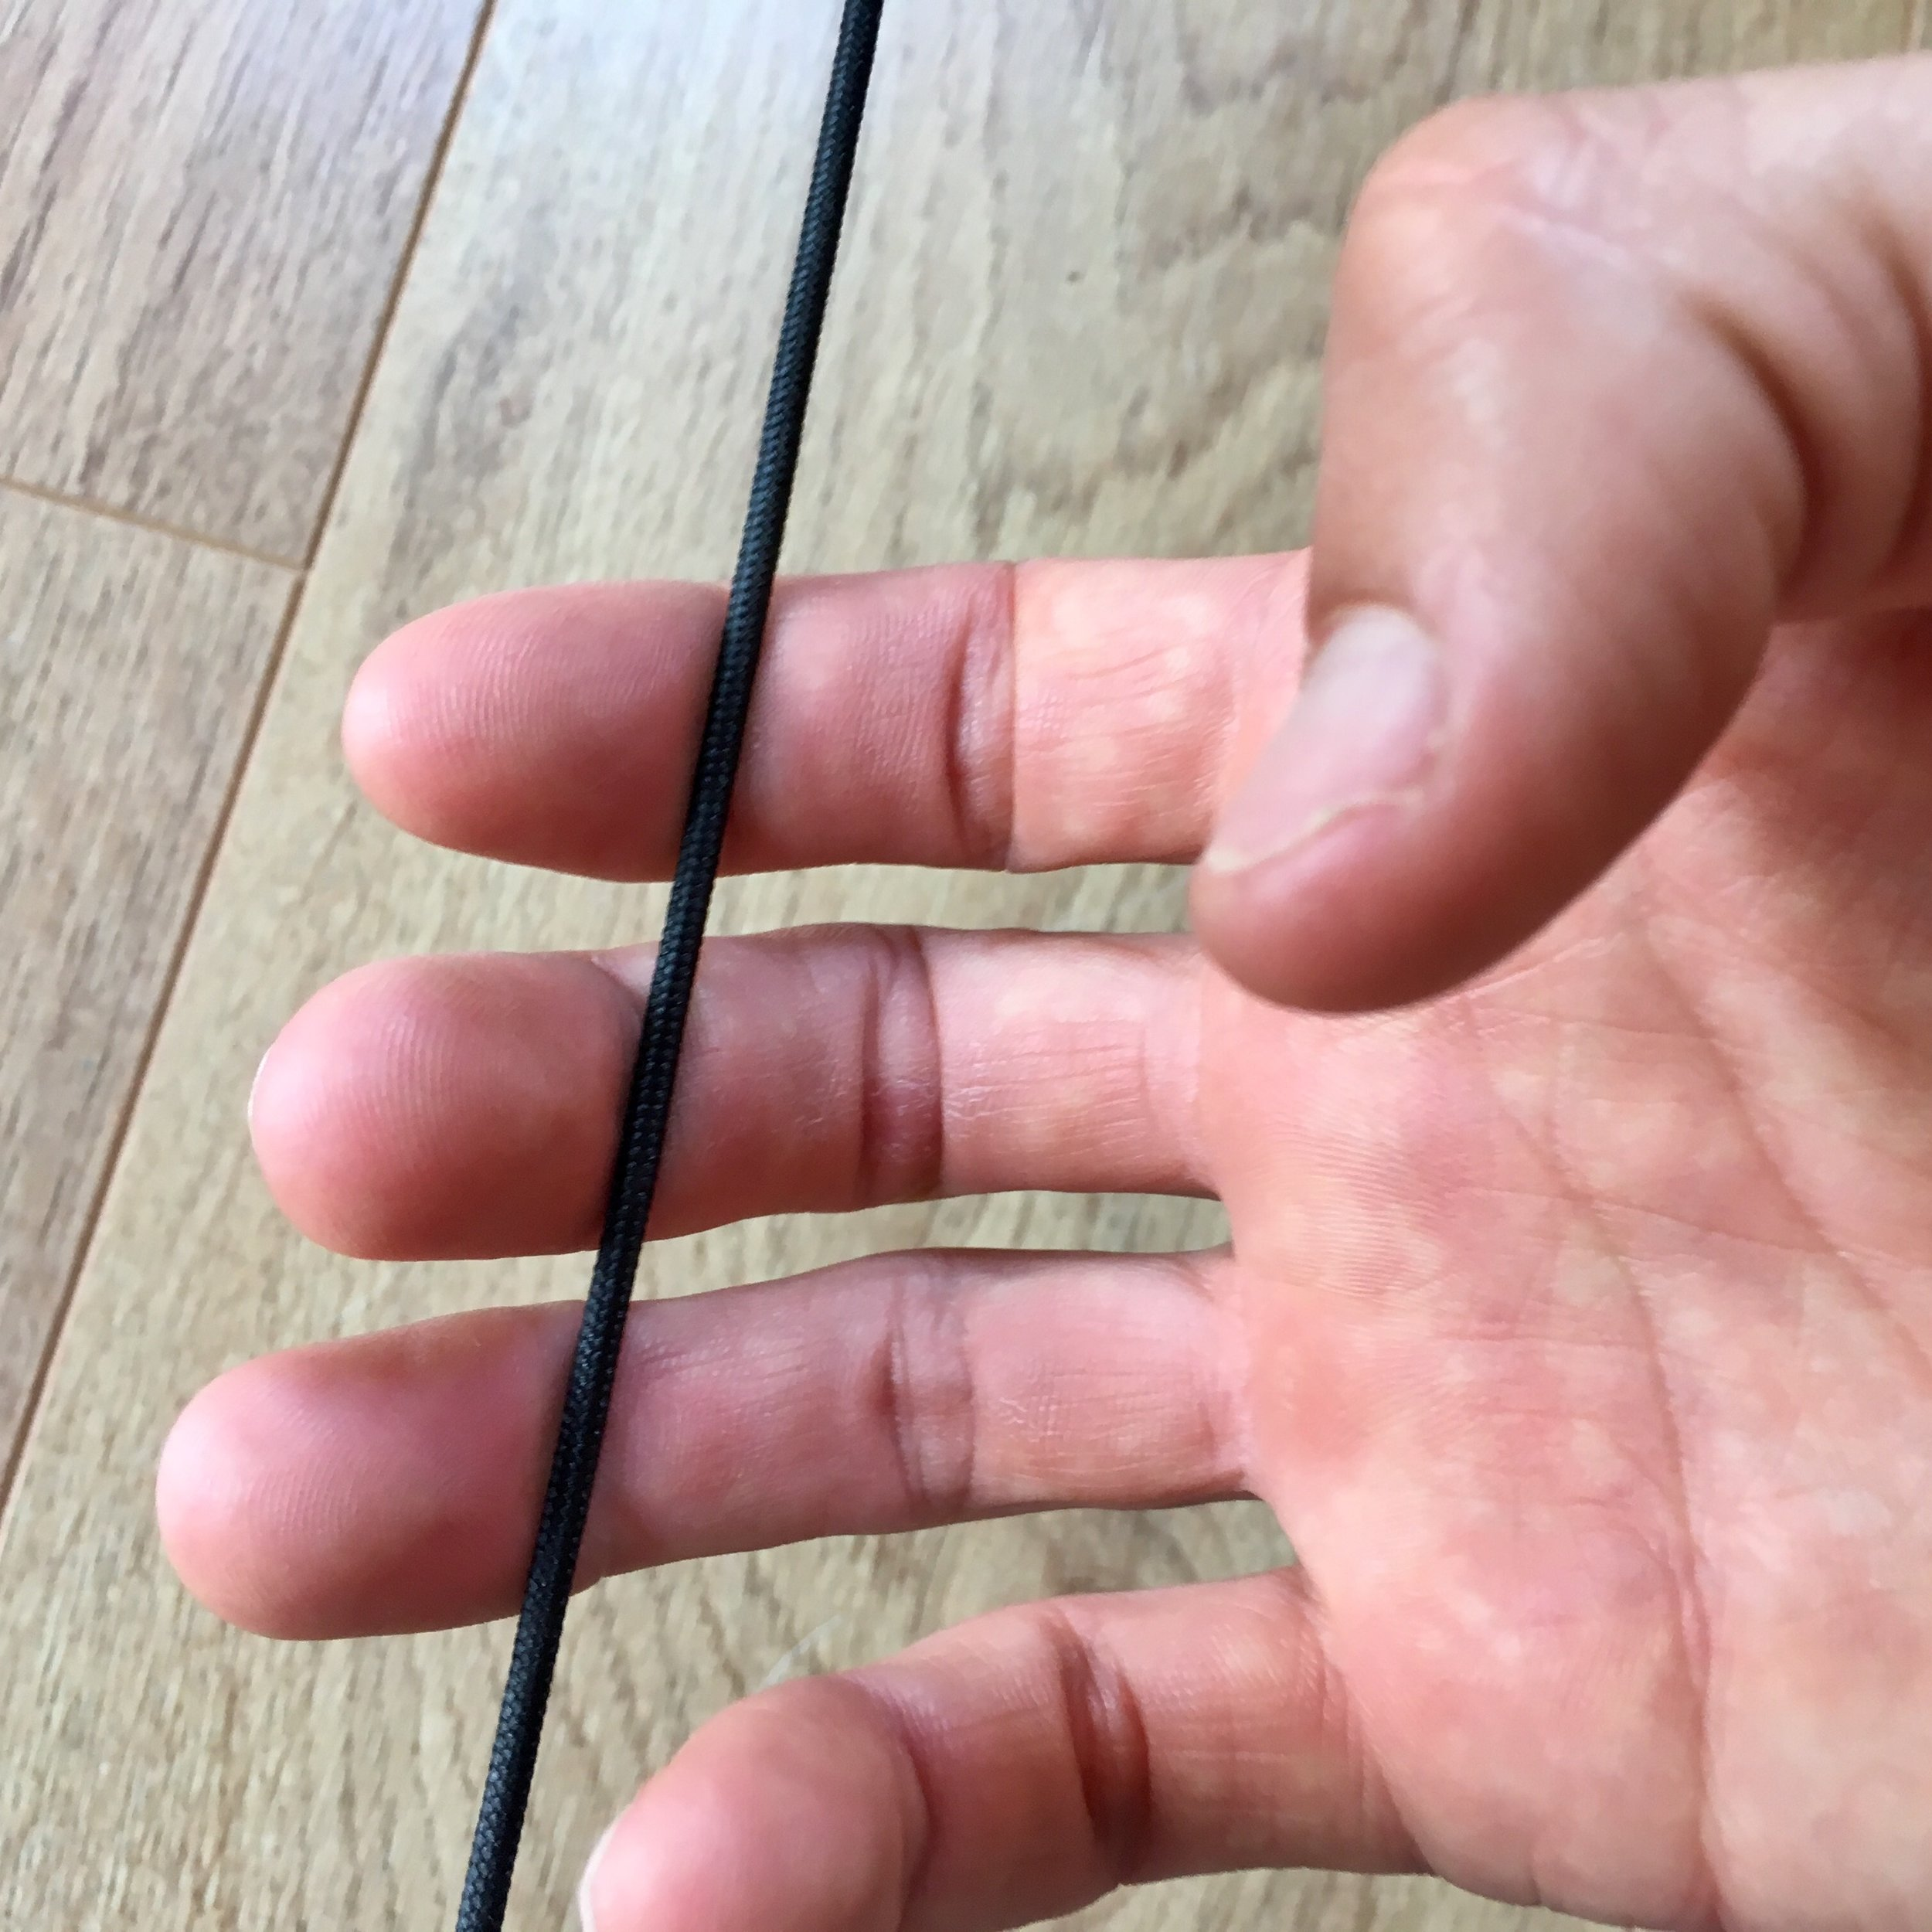 This is the ideal starting finger position on the bow string. The string is placed into the joint on all three fingers.